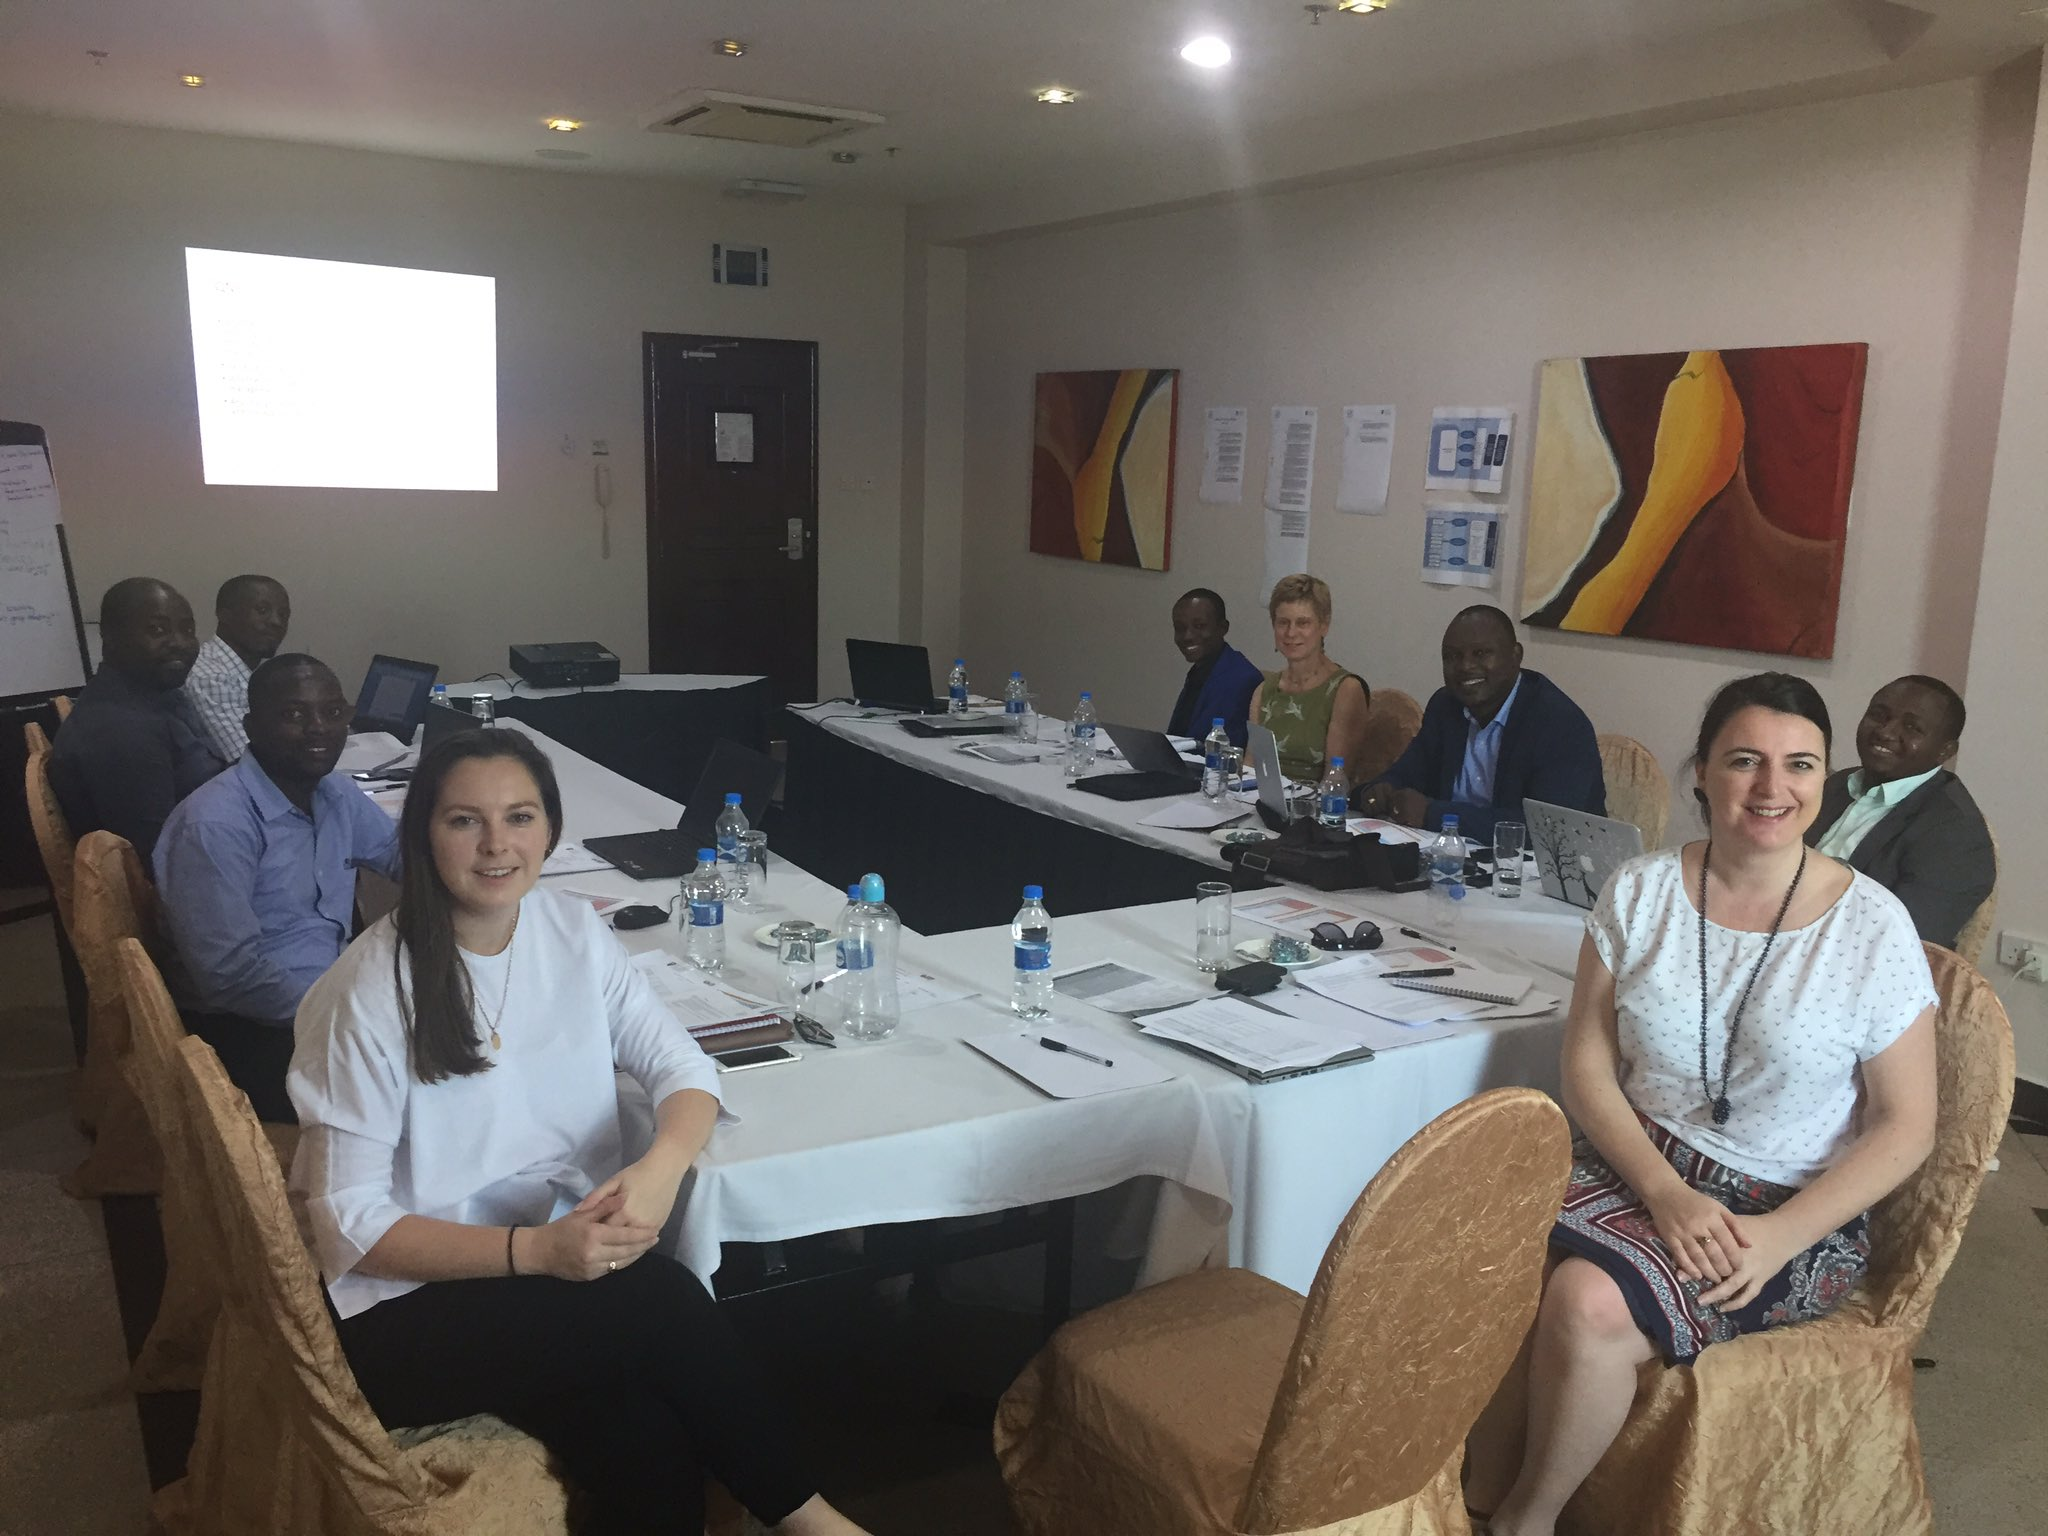 Tanzanian team conducting the Leading Safe Choices Mid-Term Review @RCObsGyn #familyplanning https://t.co/xKfAJjiGW0